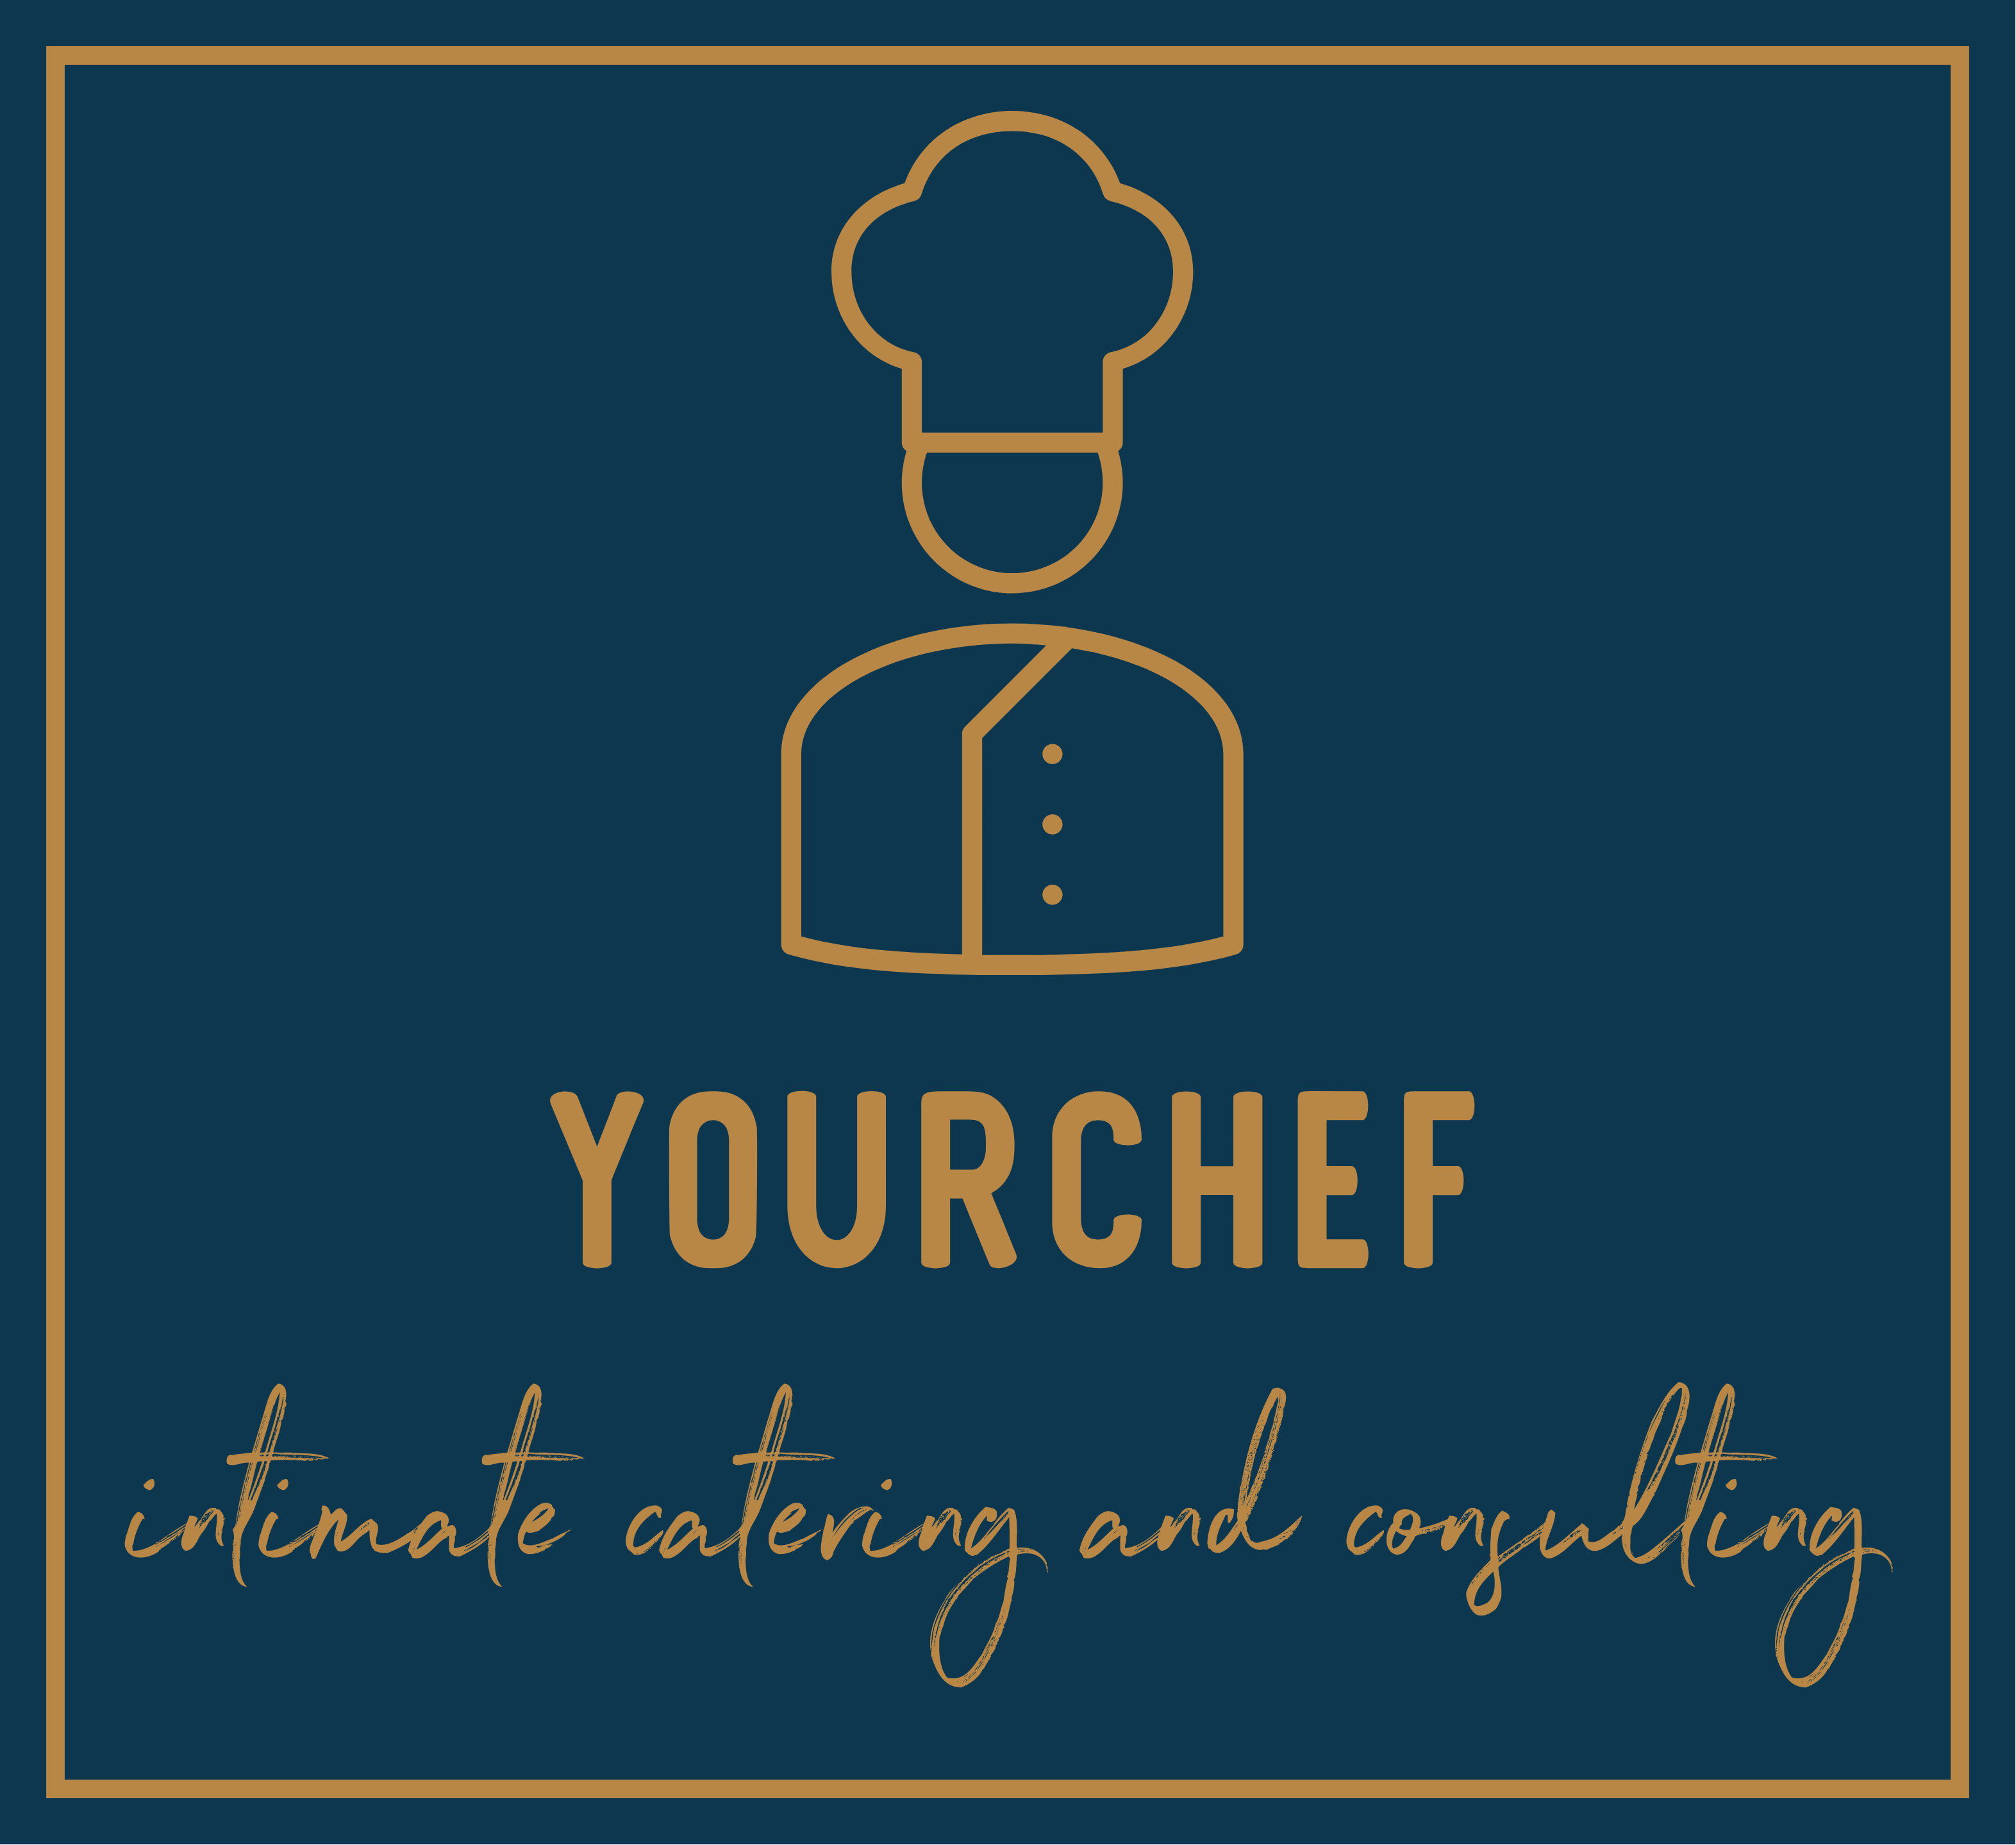 YourChef